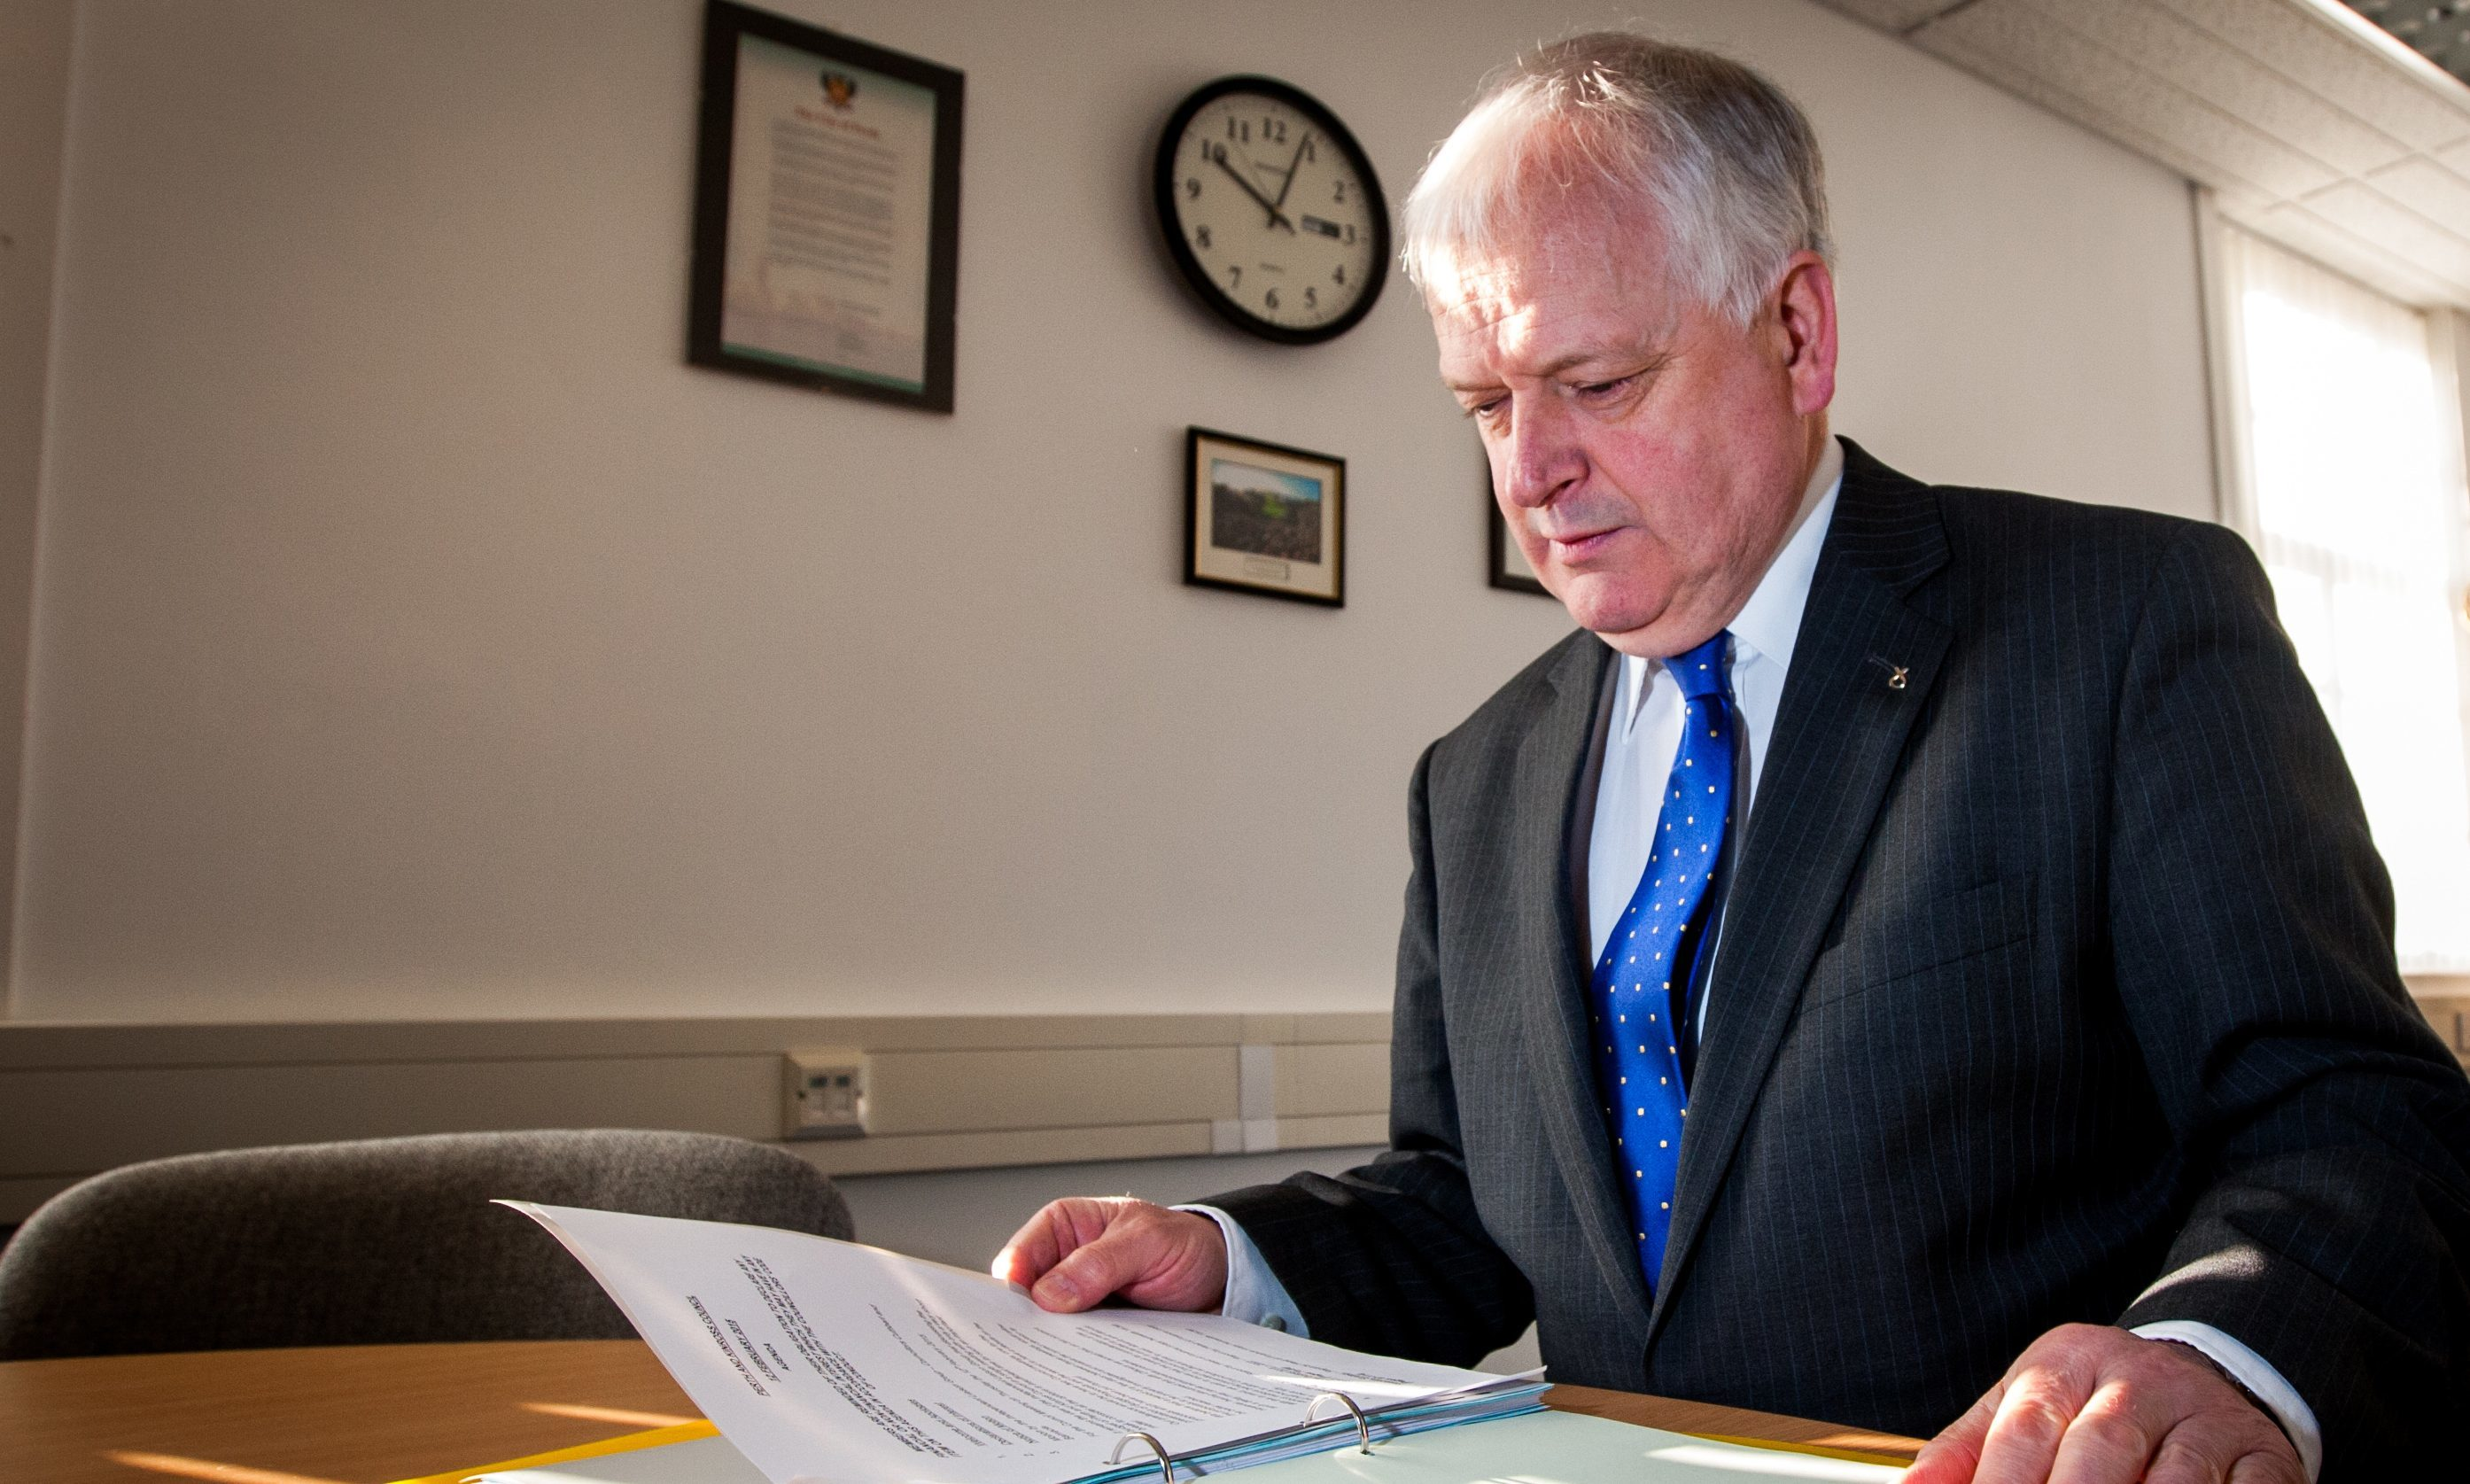 Perth and Kinross Council leader Ian Miller.